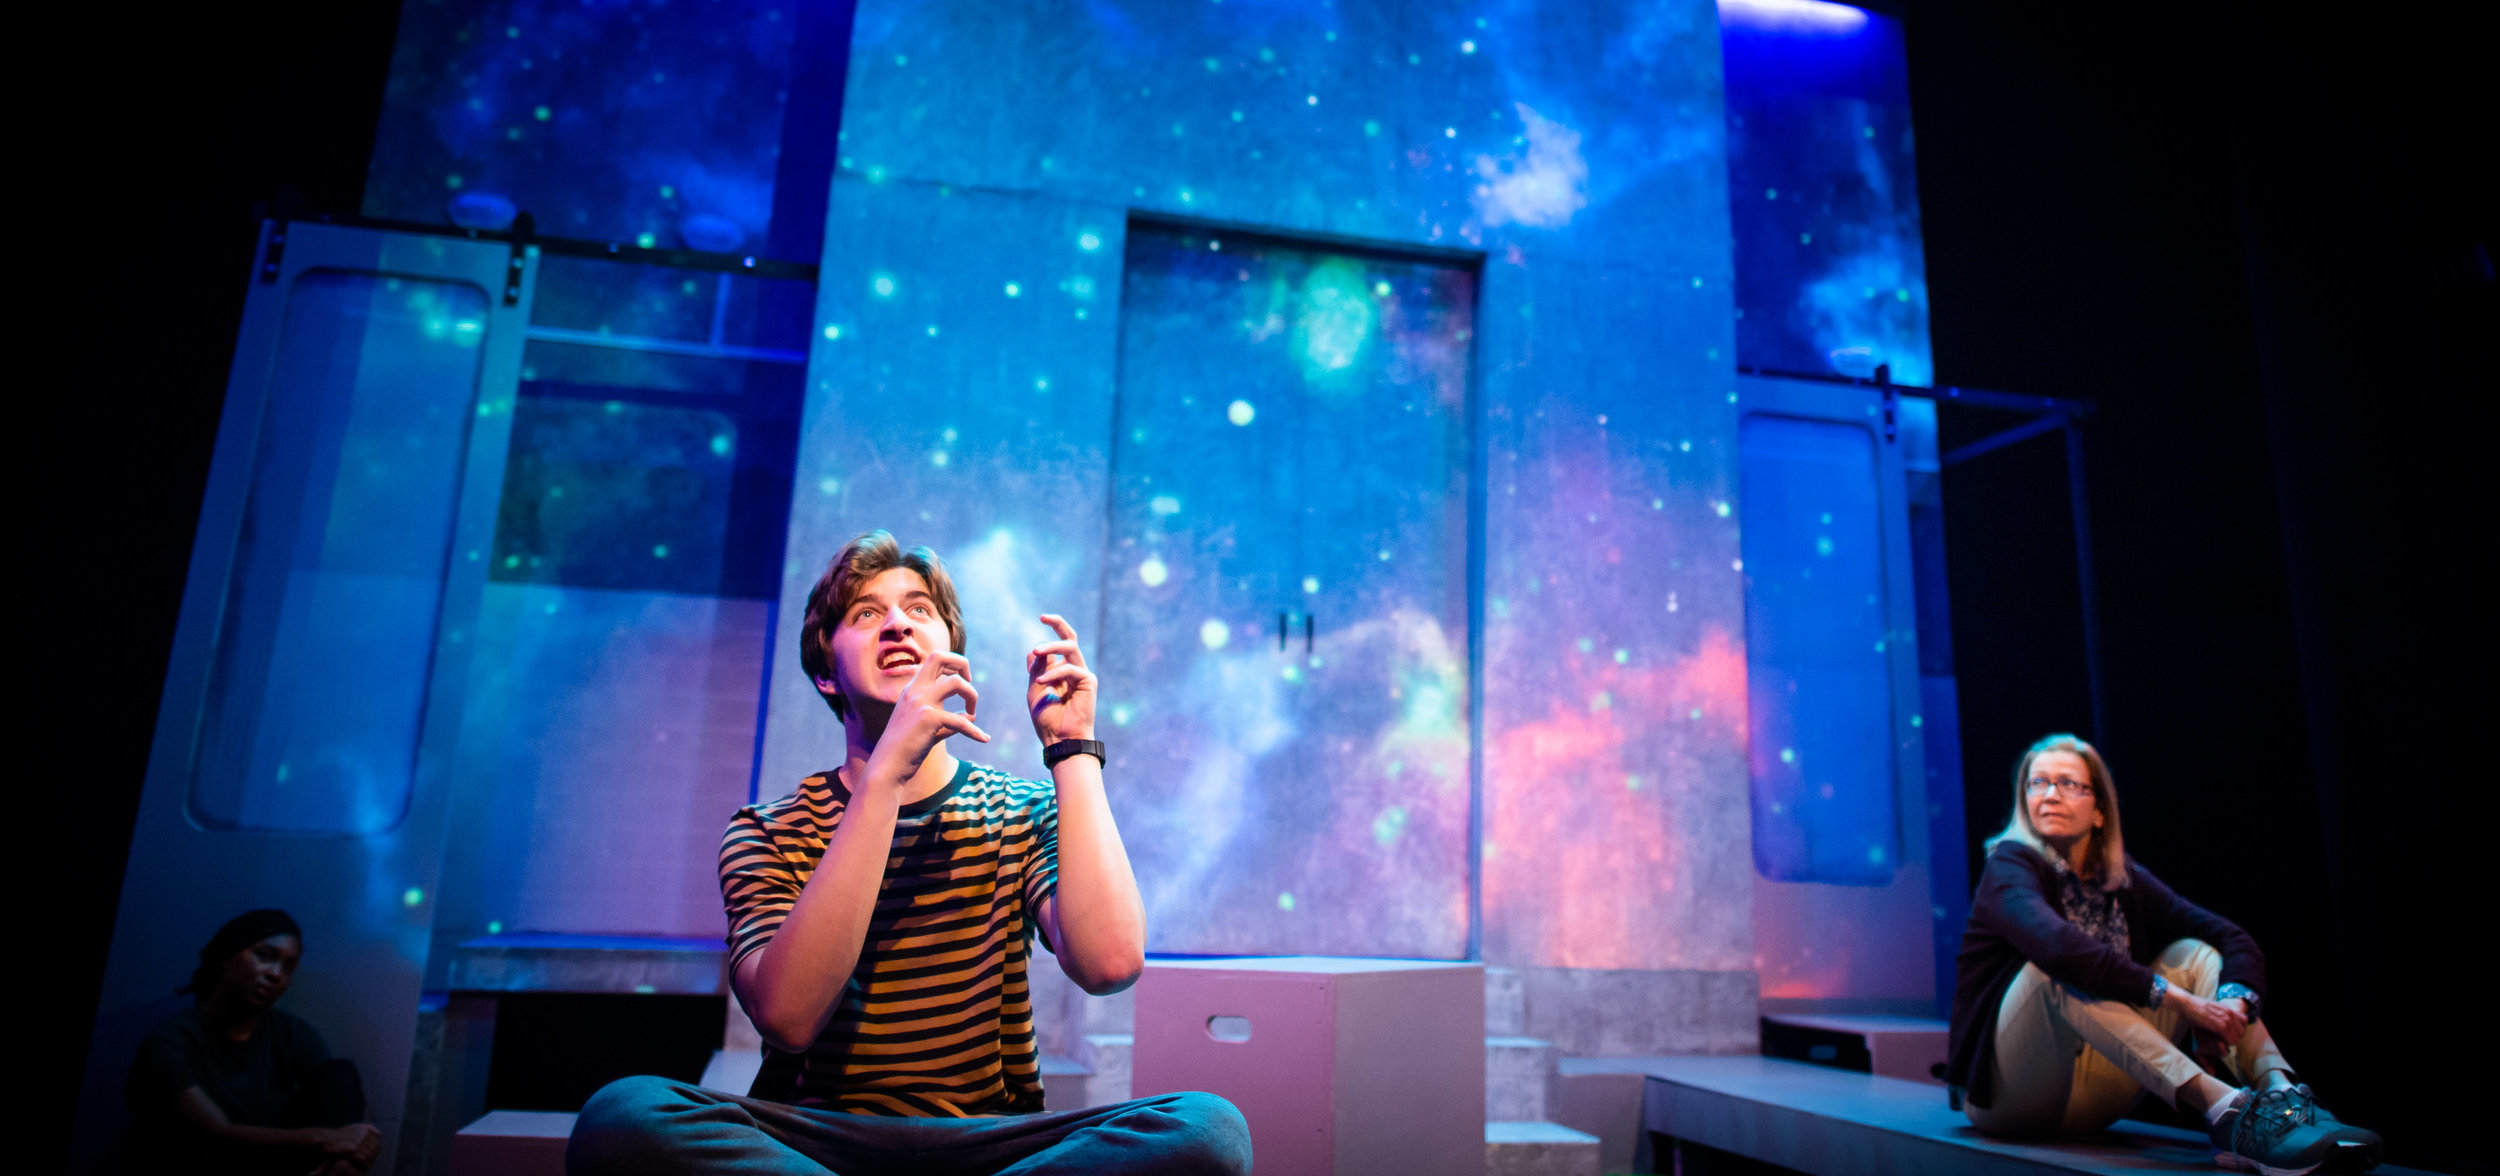 115-Yellow Tree Theatre-Curious Incident-Minneapolis theater photographer-www.jcoxphotography.com-September 10, 2019.jpg